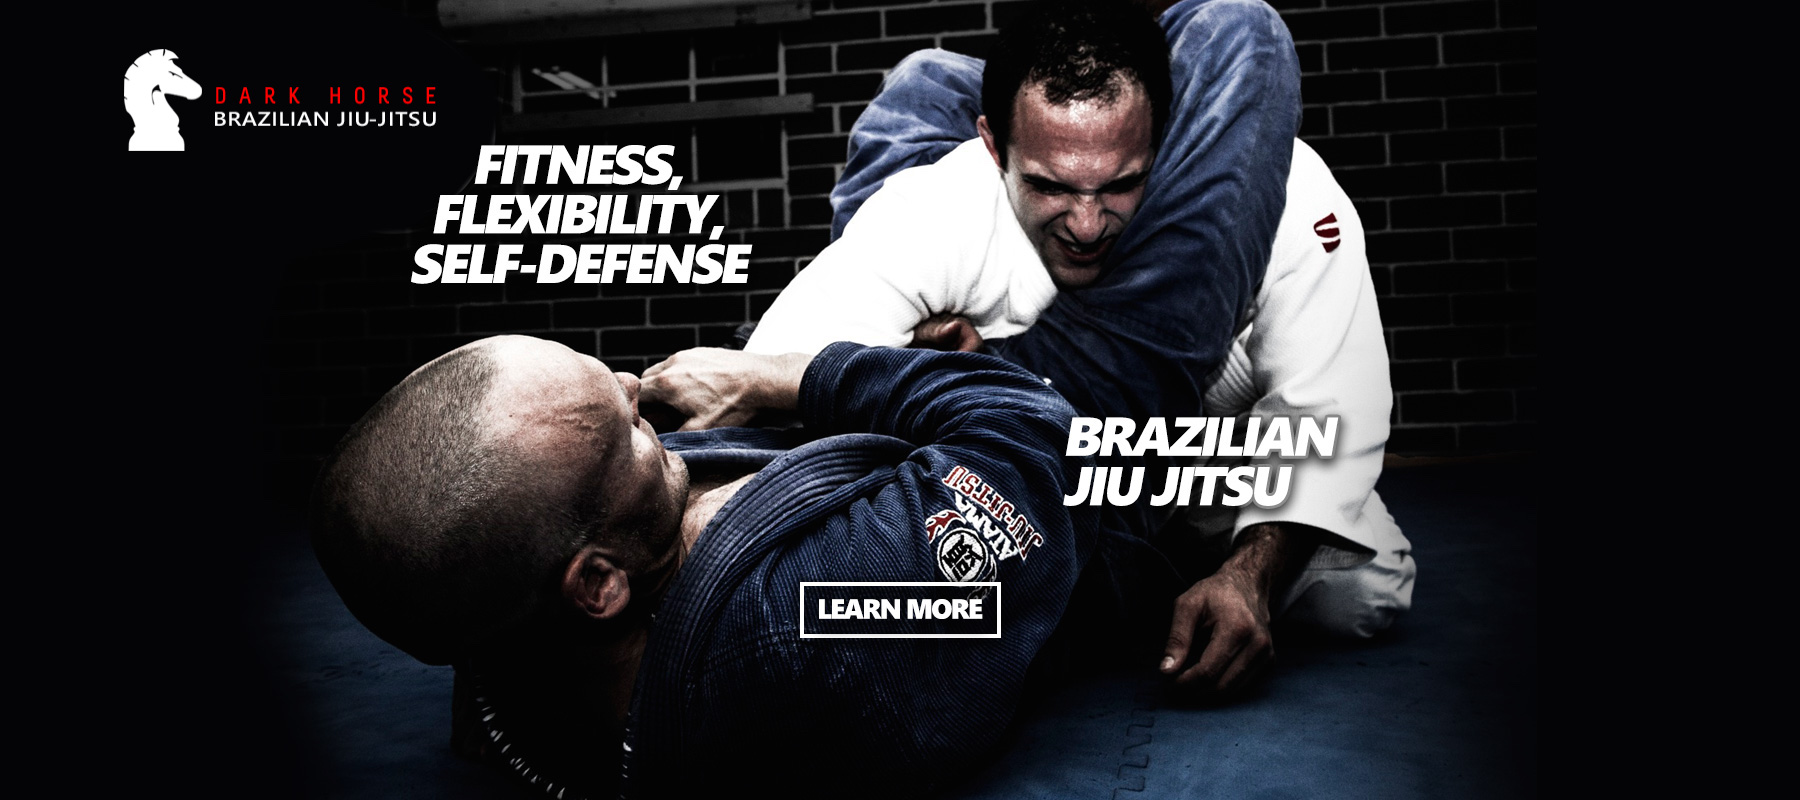 How to learn BJJ at home??? | Sherdog Forums | UFC, MMA ...